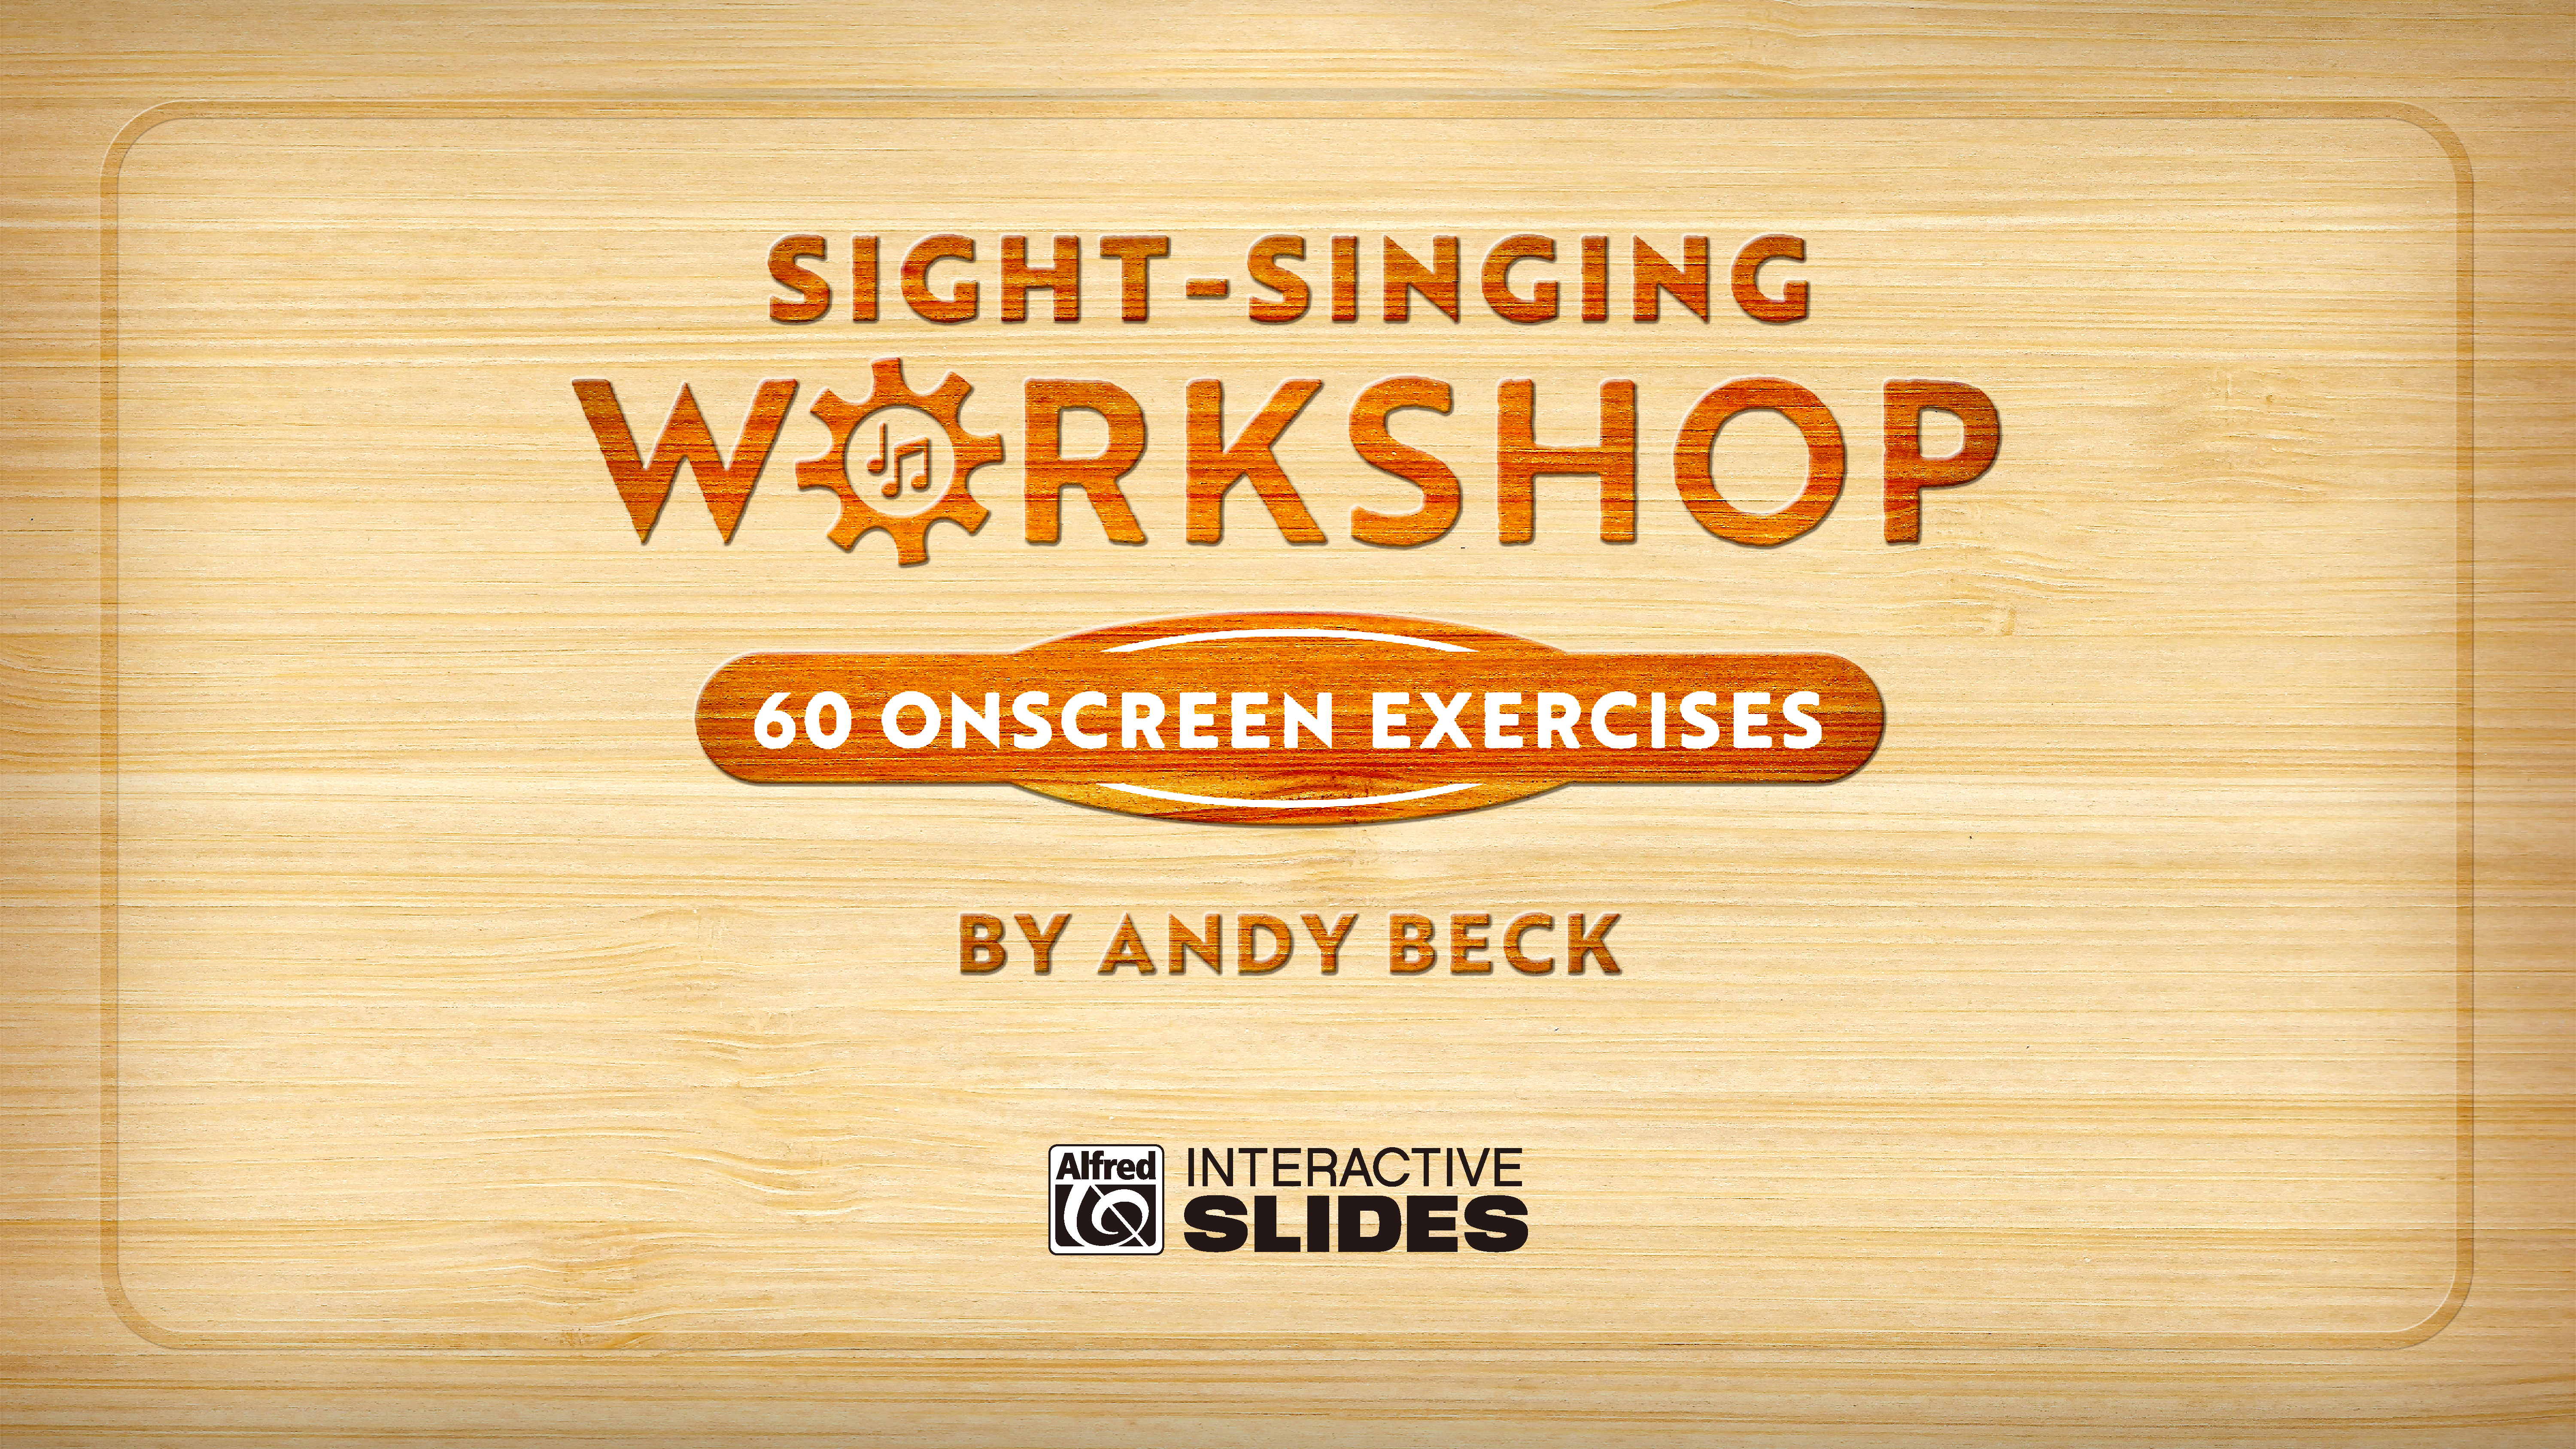 Sight-Singing Workshop